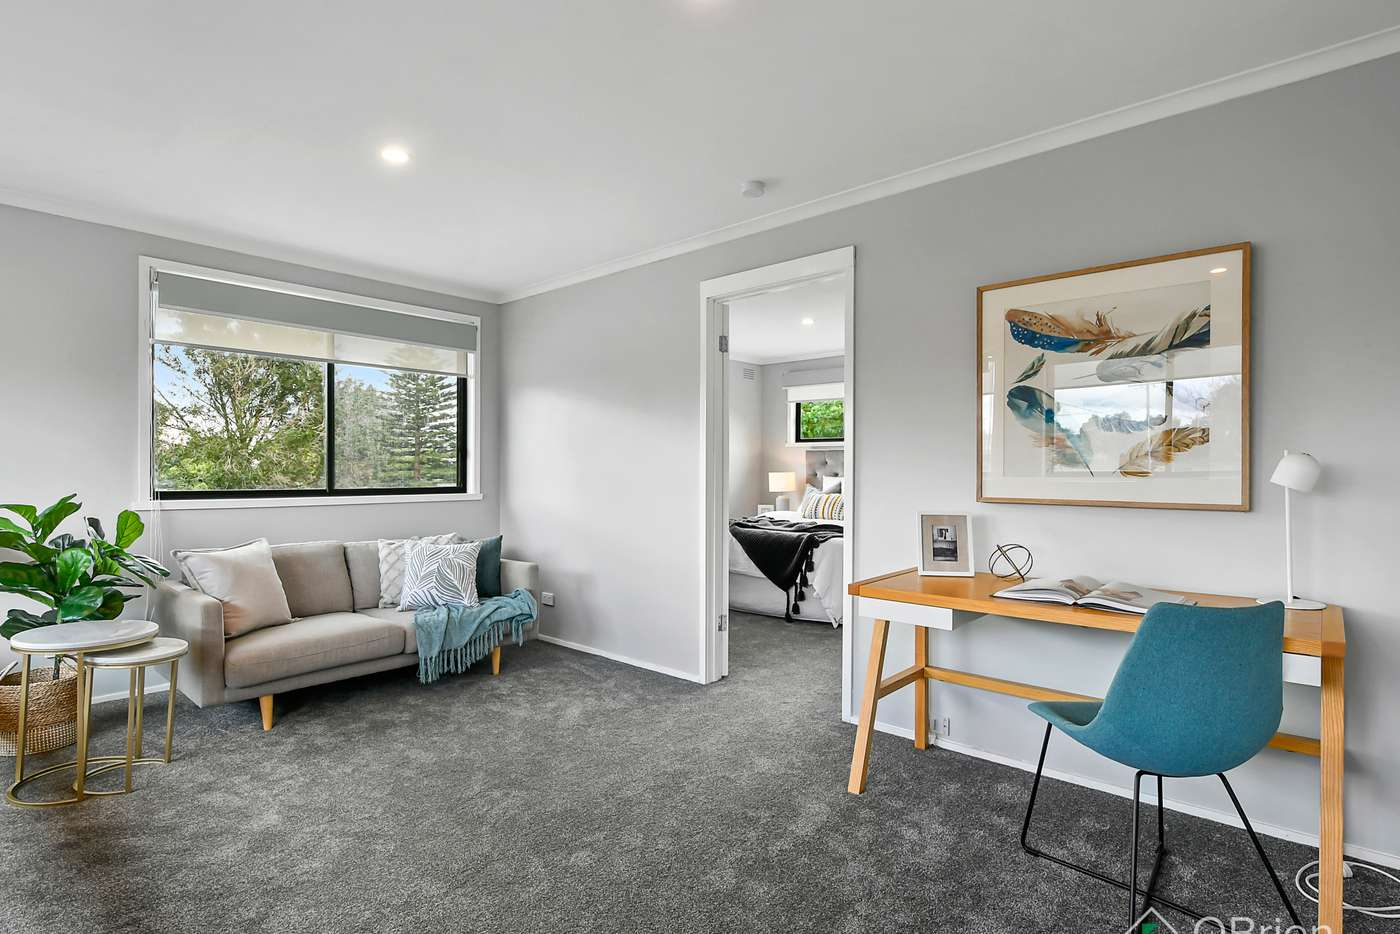 Fifth view of Homely house listing, 6 Merlin Court, Frankston VIC 3199